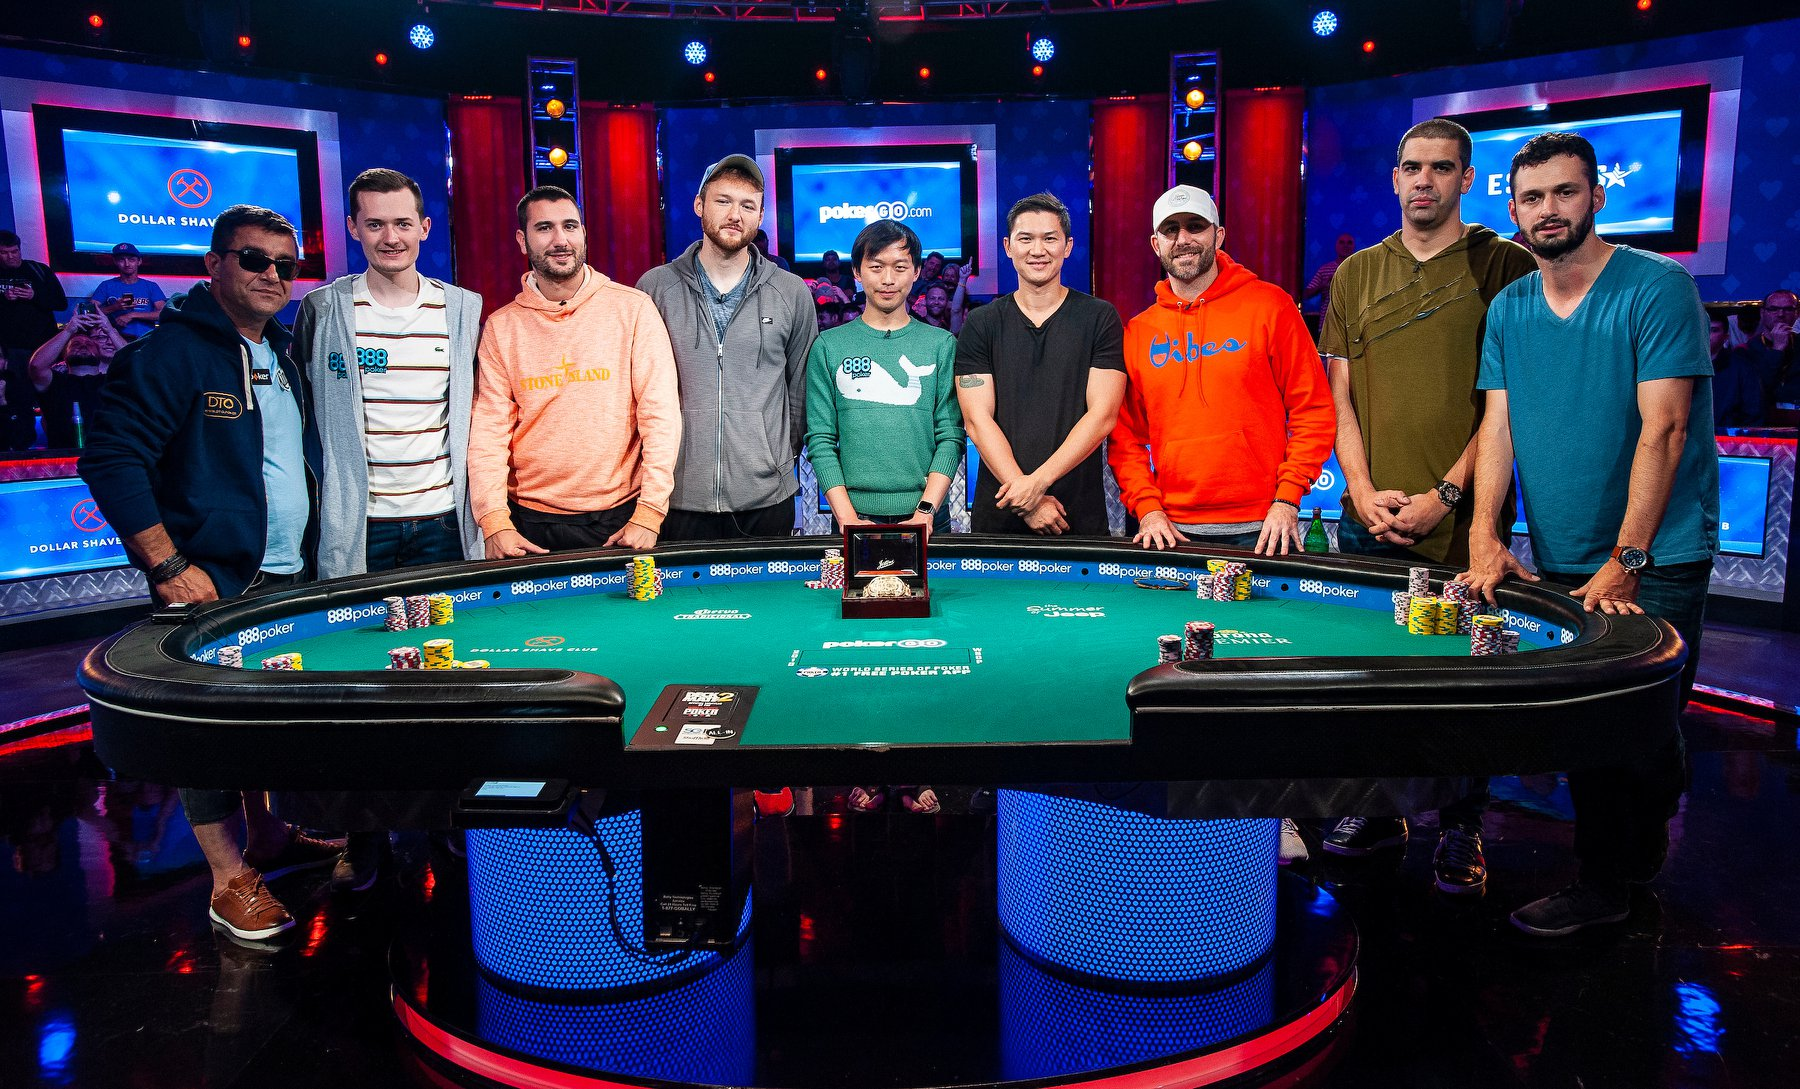 Finalisten Main Event, WSOP 2019, Pokertisch